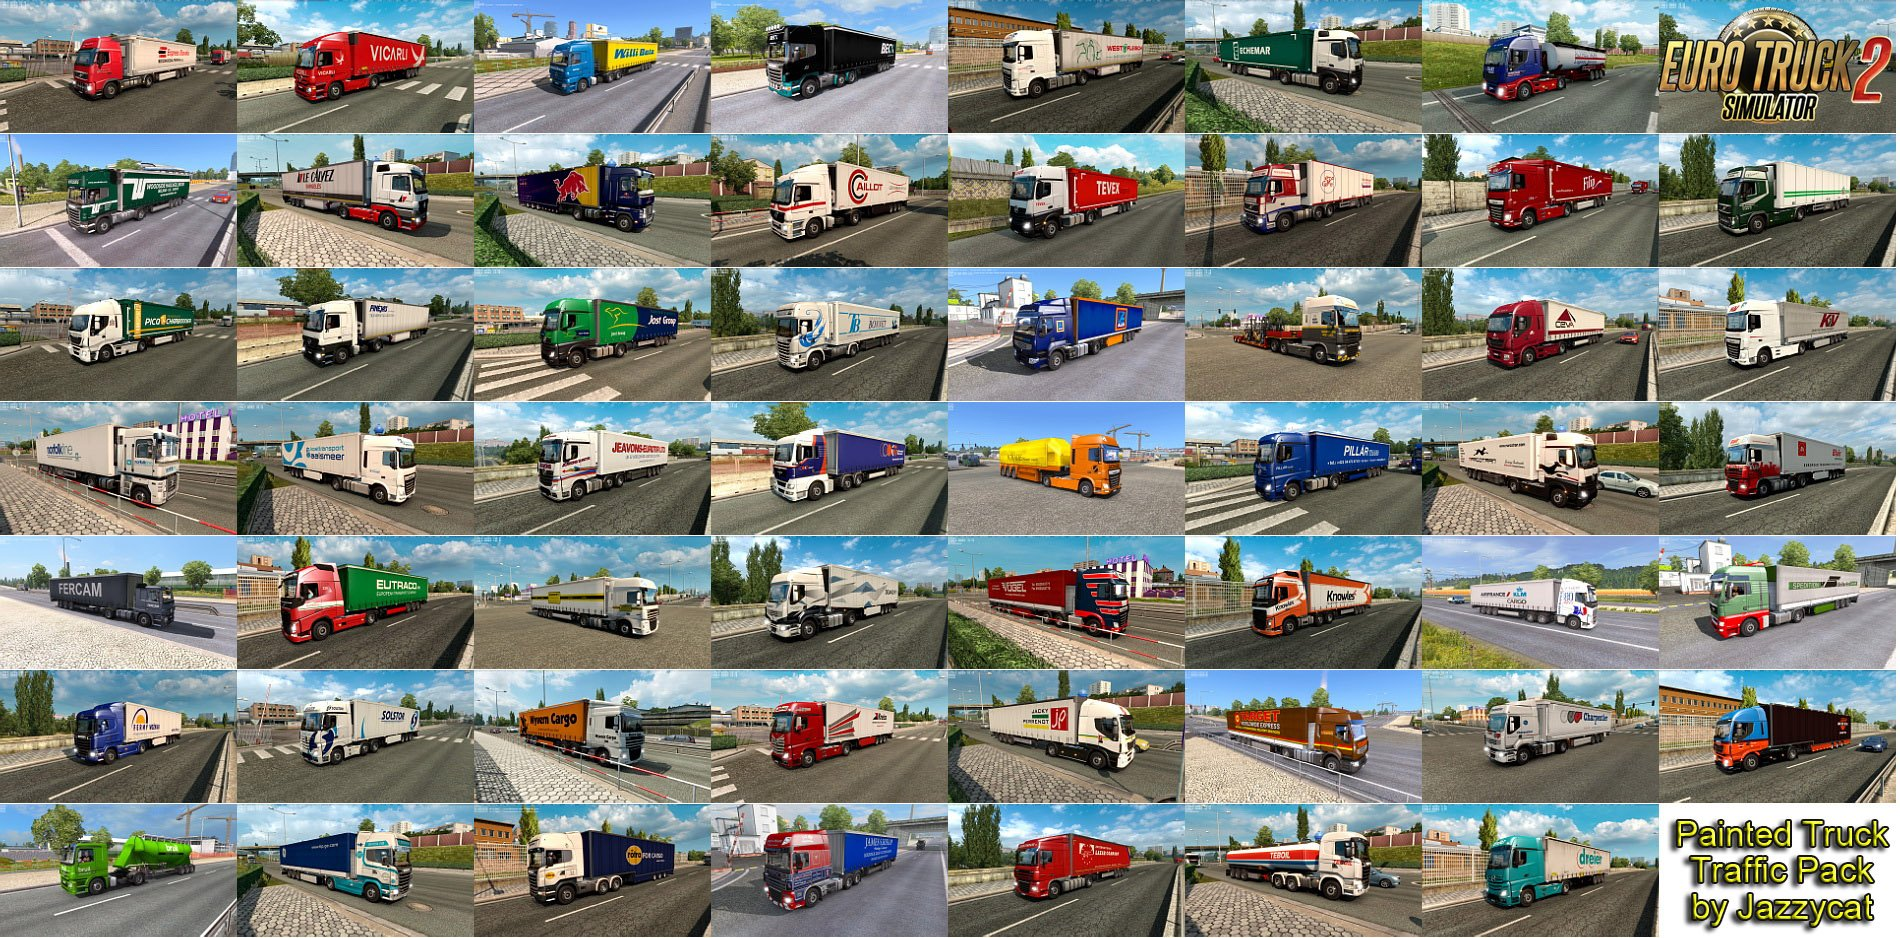 Painted Truck Traffic Pack v5.2 by Jazzycat